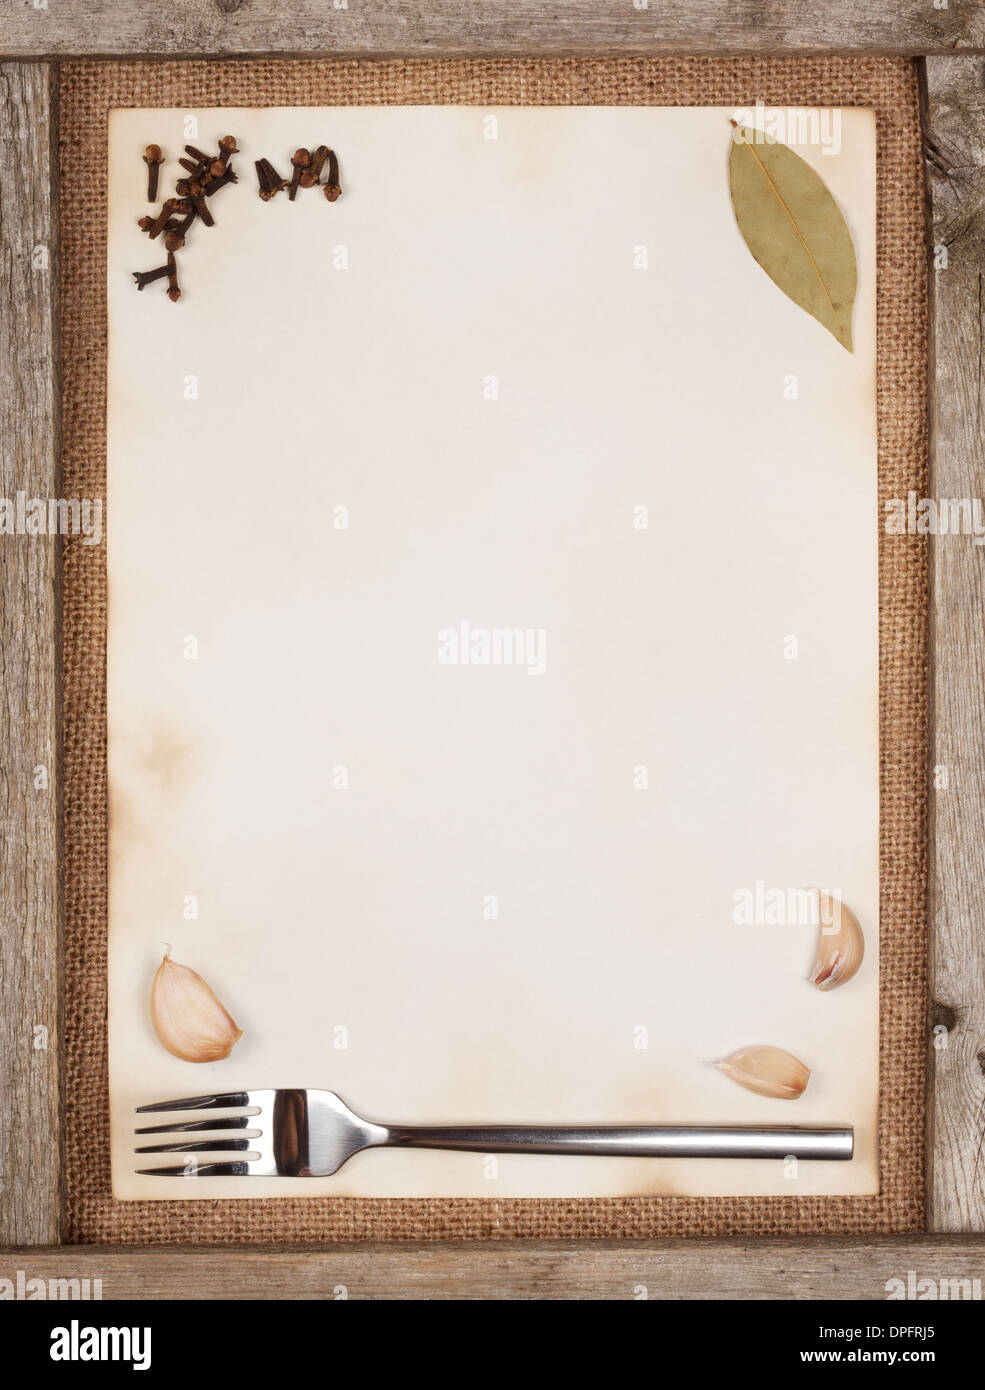 Sheet of paper with spices in a frame of boards - Stock Image